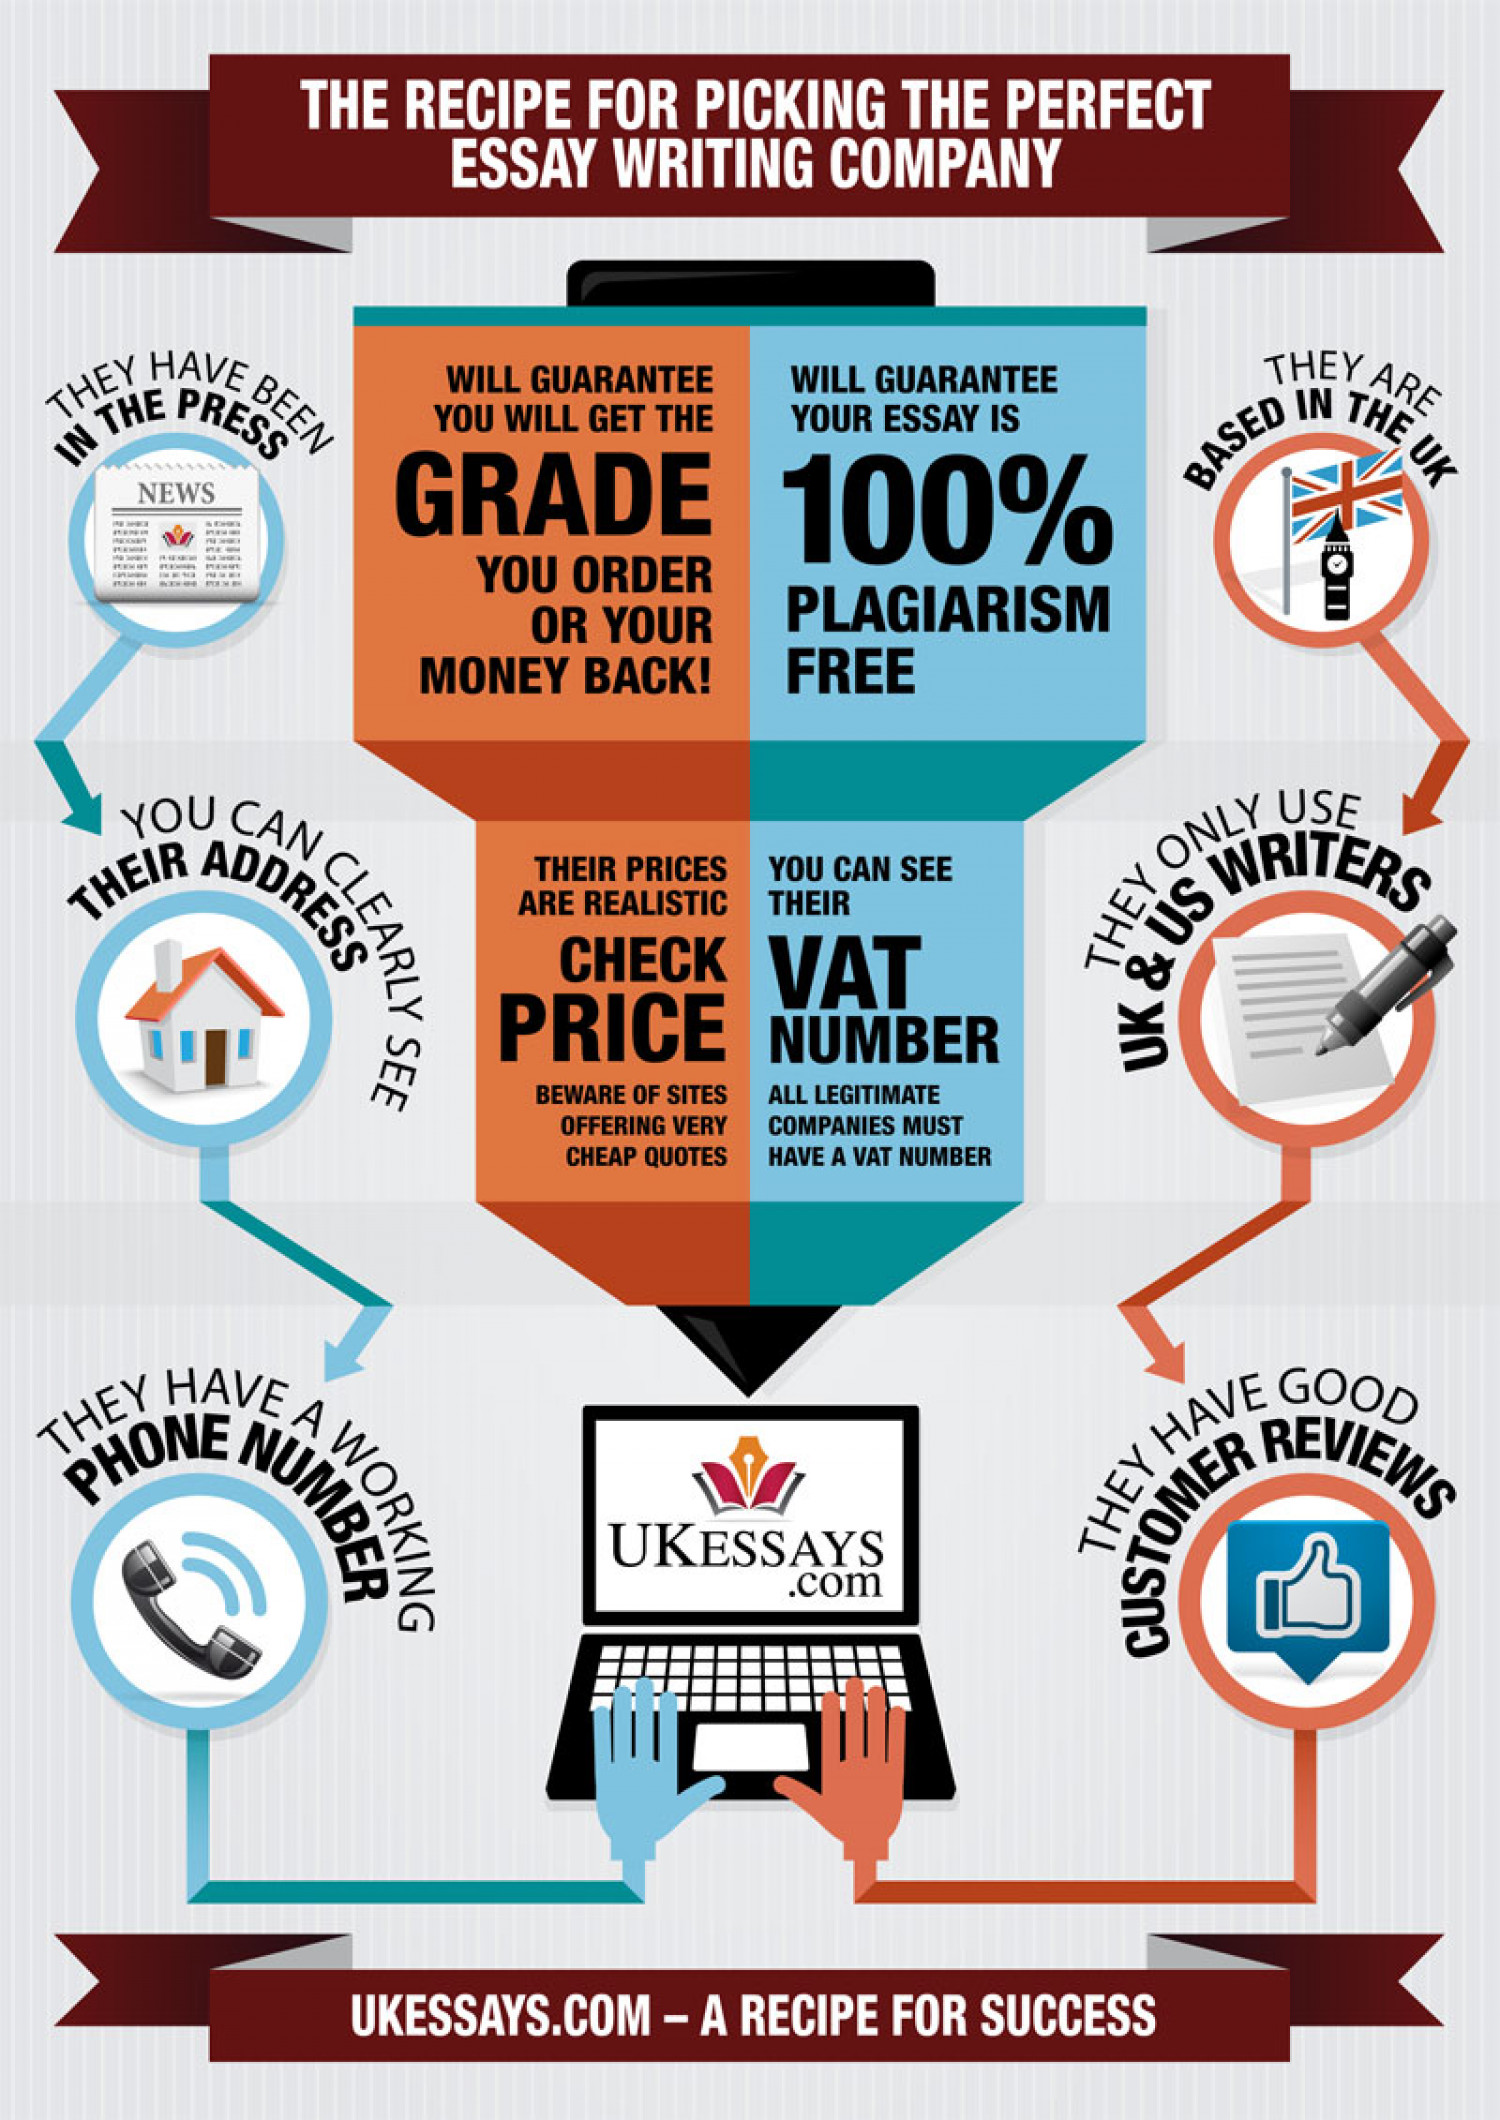 Recipe for the perfect essay Infographic